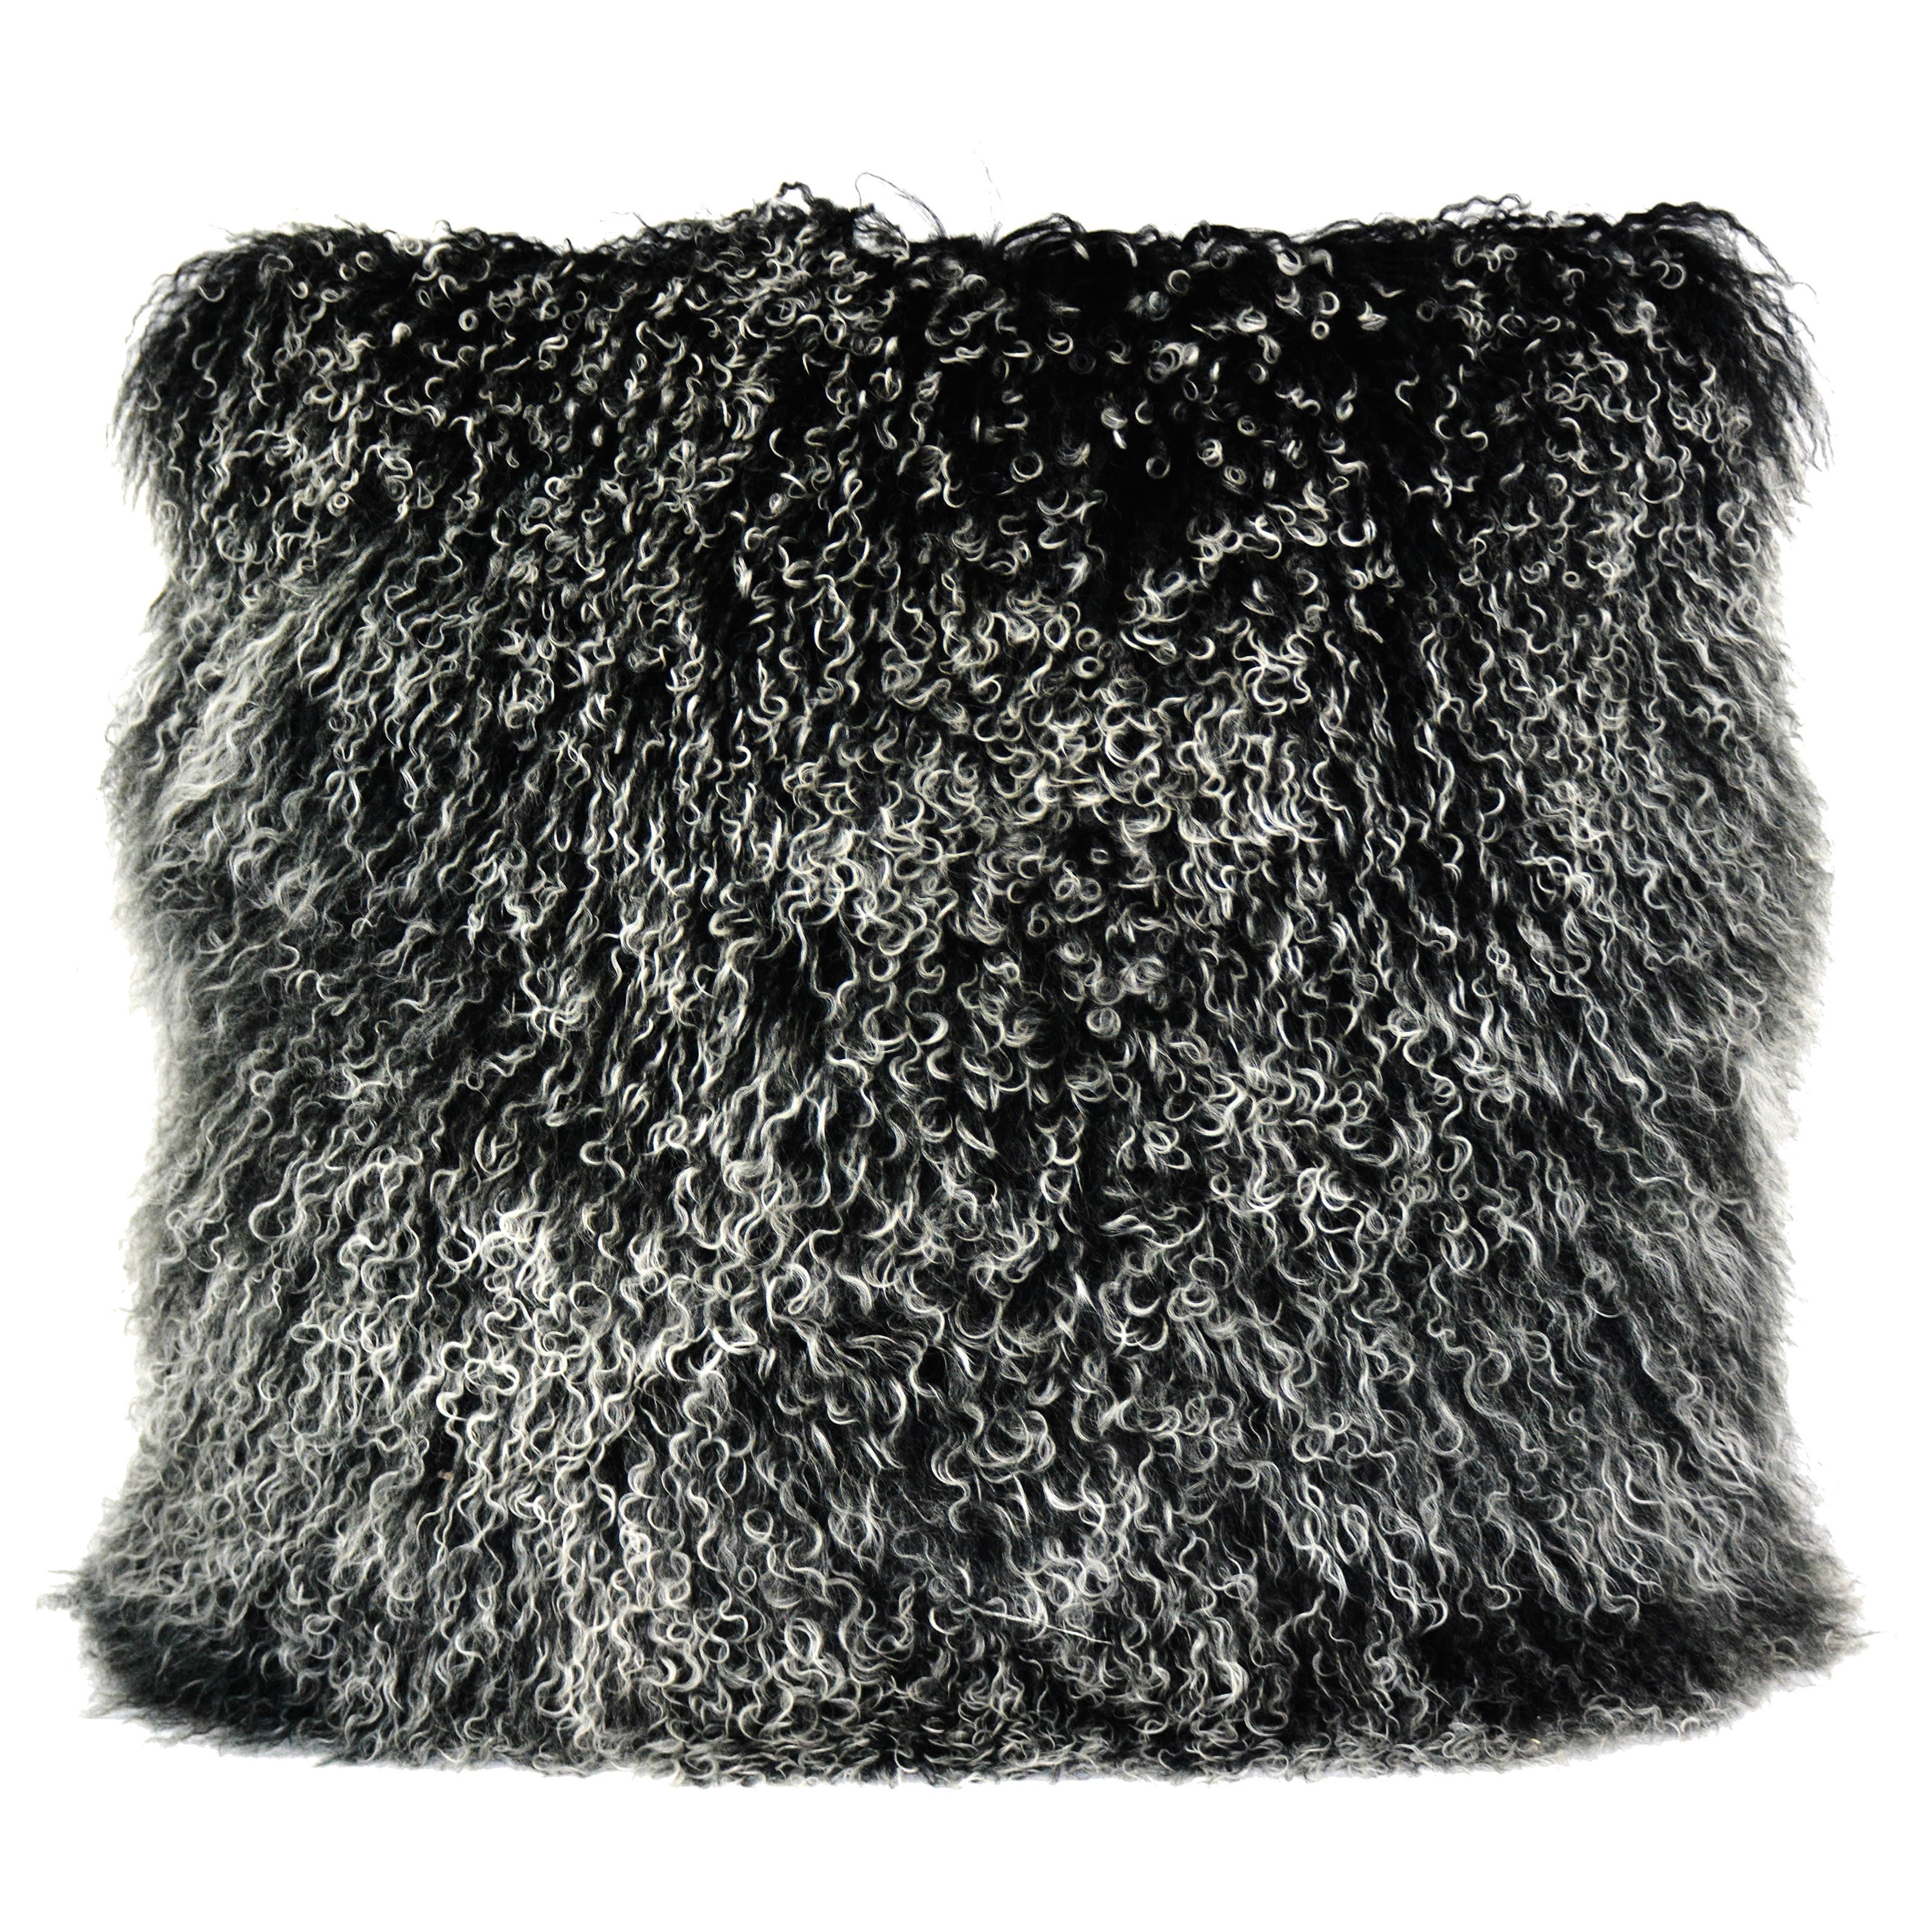 Pillows and Throws Lamb Fur Pillow Large Black Snow by Moe's Home Collection at Stoney Creek Furniture